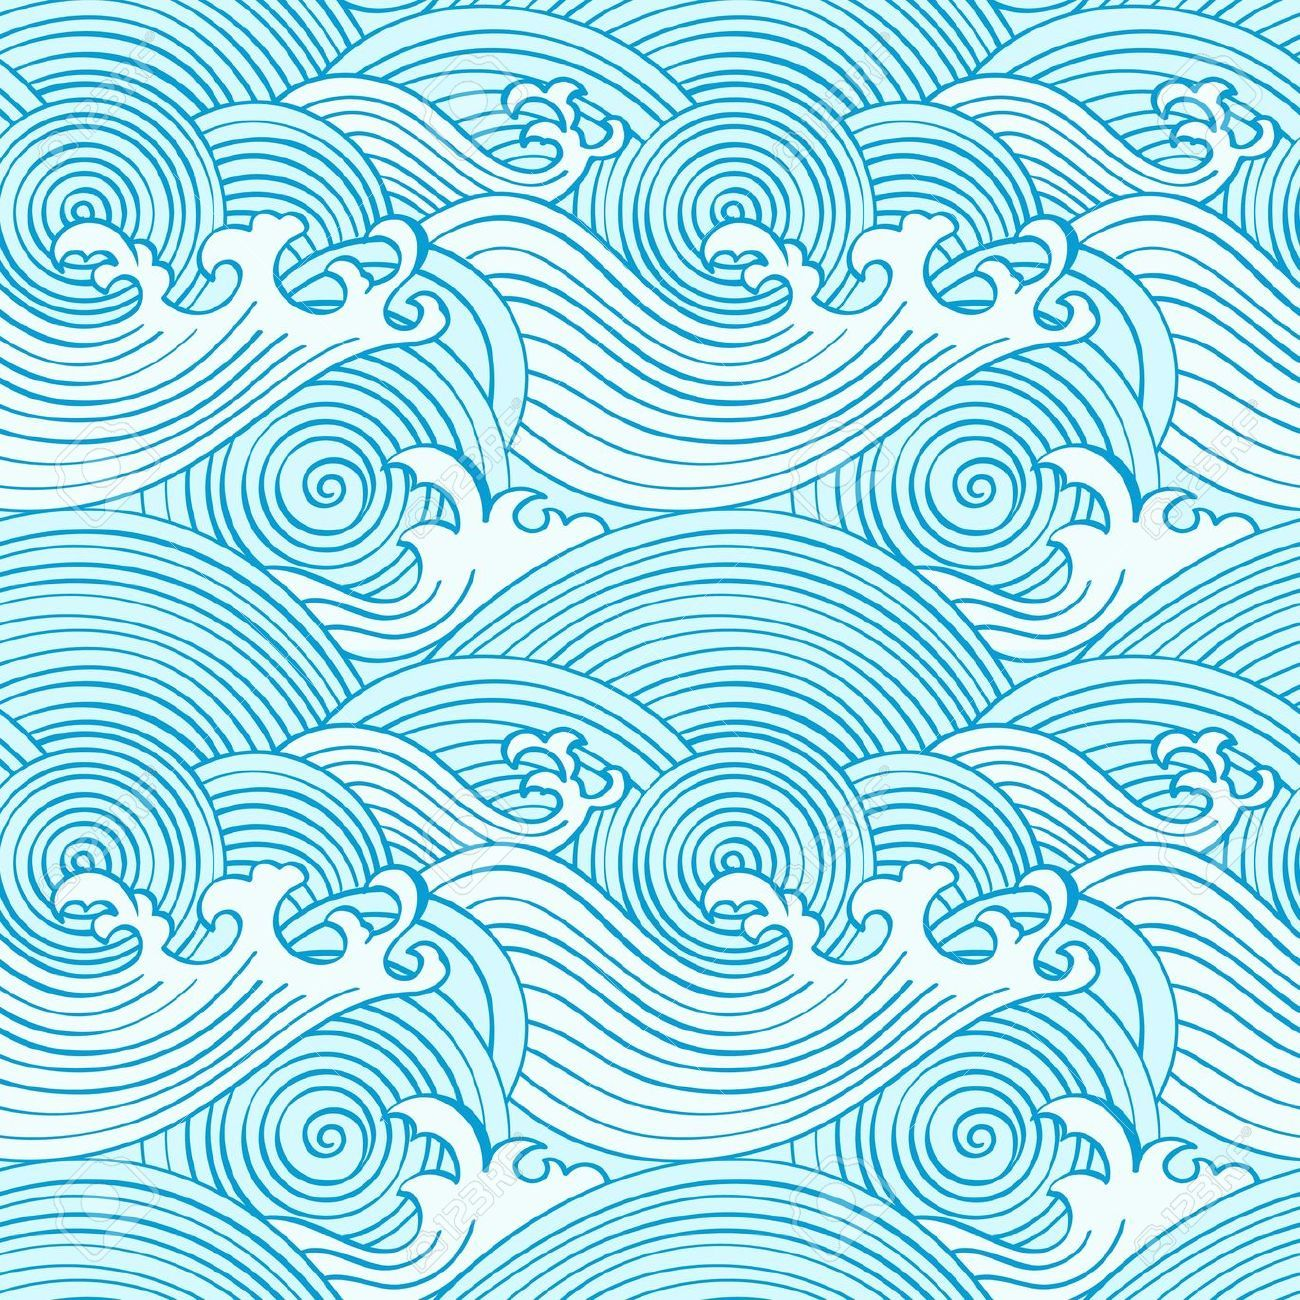 japanese seamless waves pattern in ocean colors royalty free cliparts vectors and stock. Black Bedroom Furniture Sets. Home Design Ideas